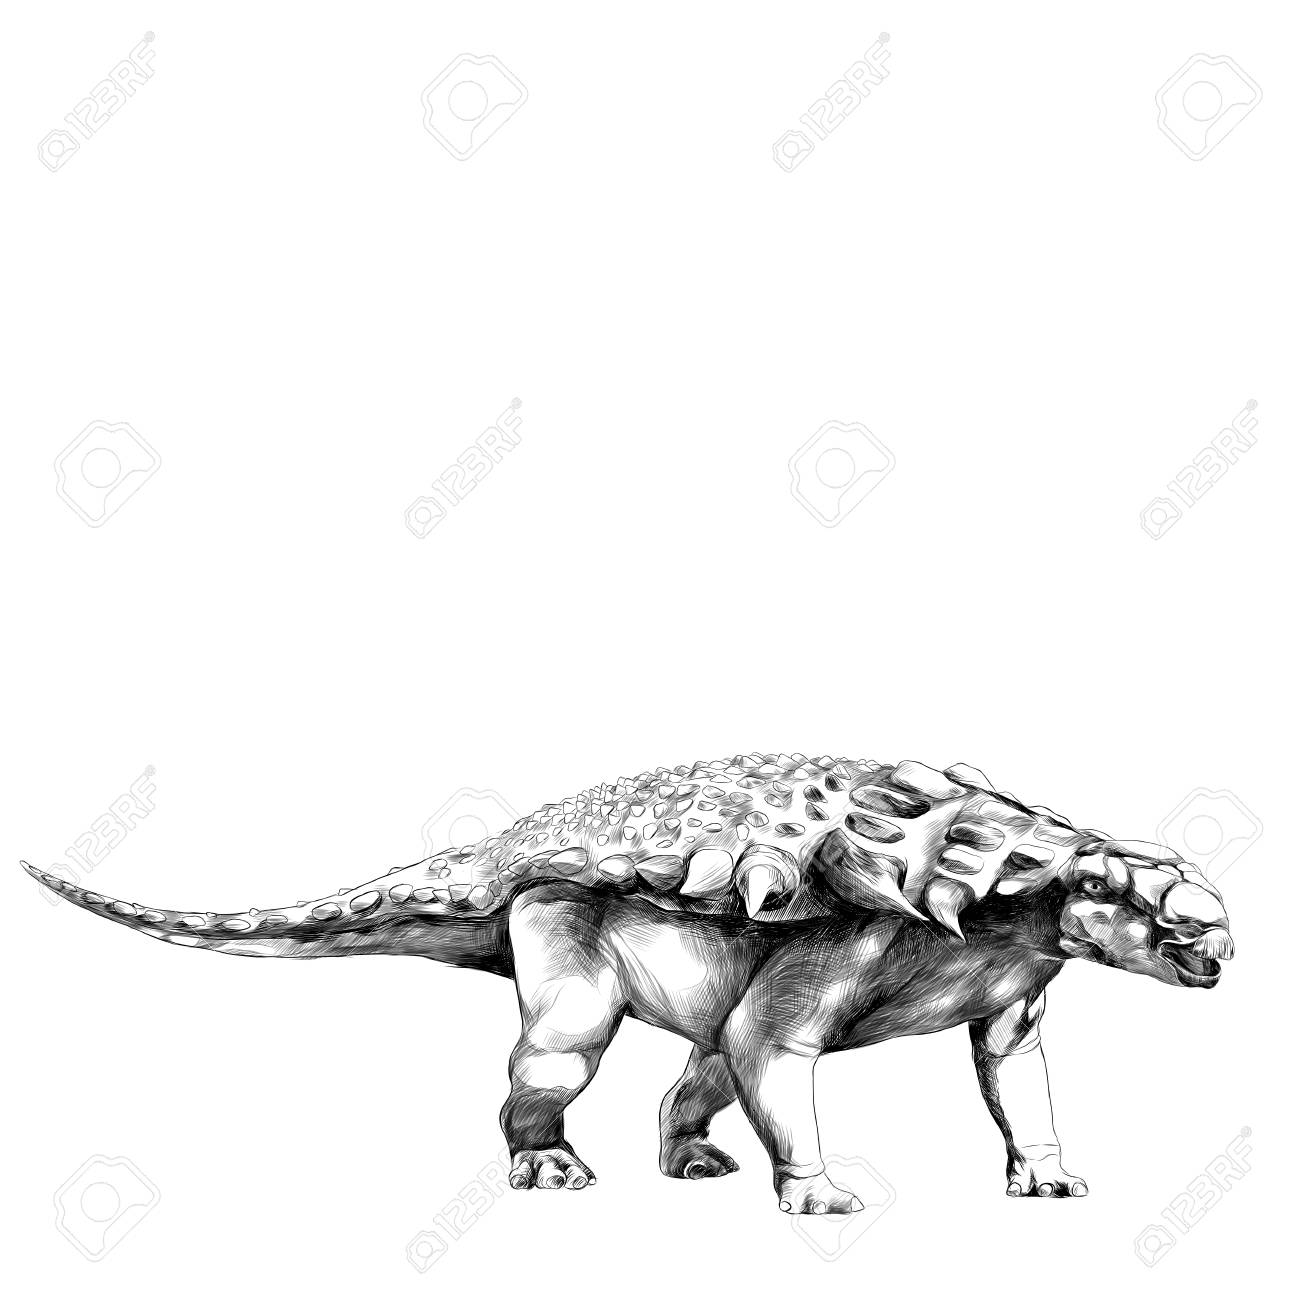 1300x1300 Dinosaur In Full Growth Stegosaurus Armadillo With Spikes On